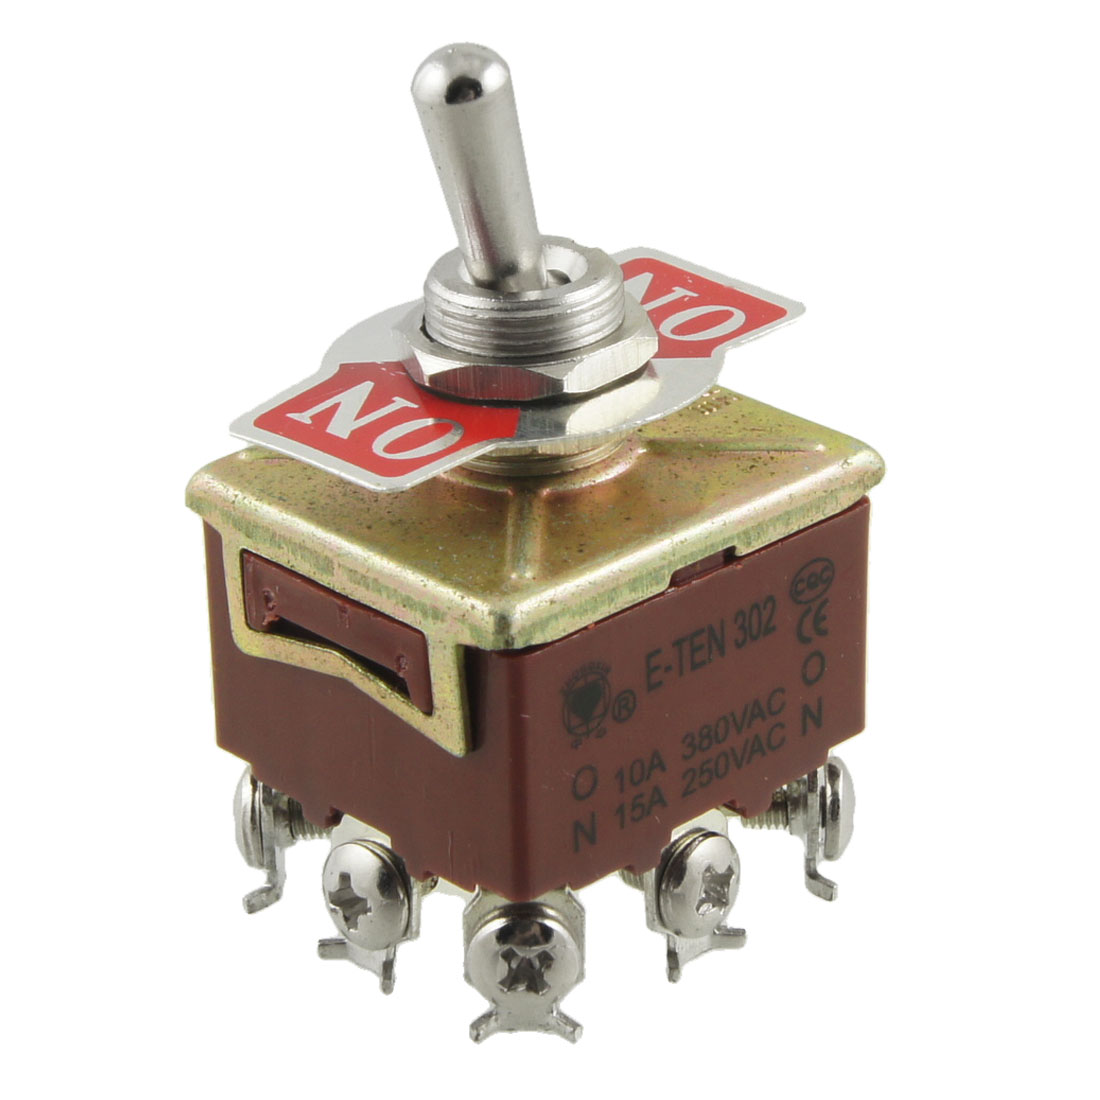 3PDT On/On 2 Position Toggle Switch AC 15A/250V 10A/380V